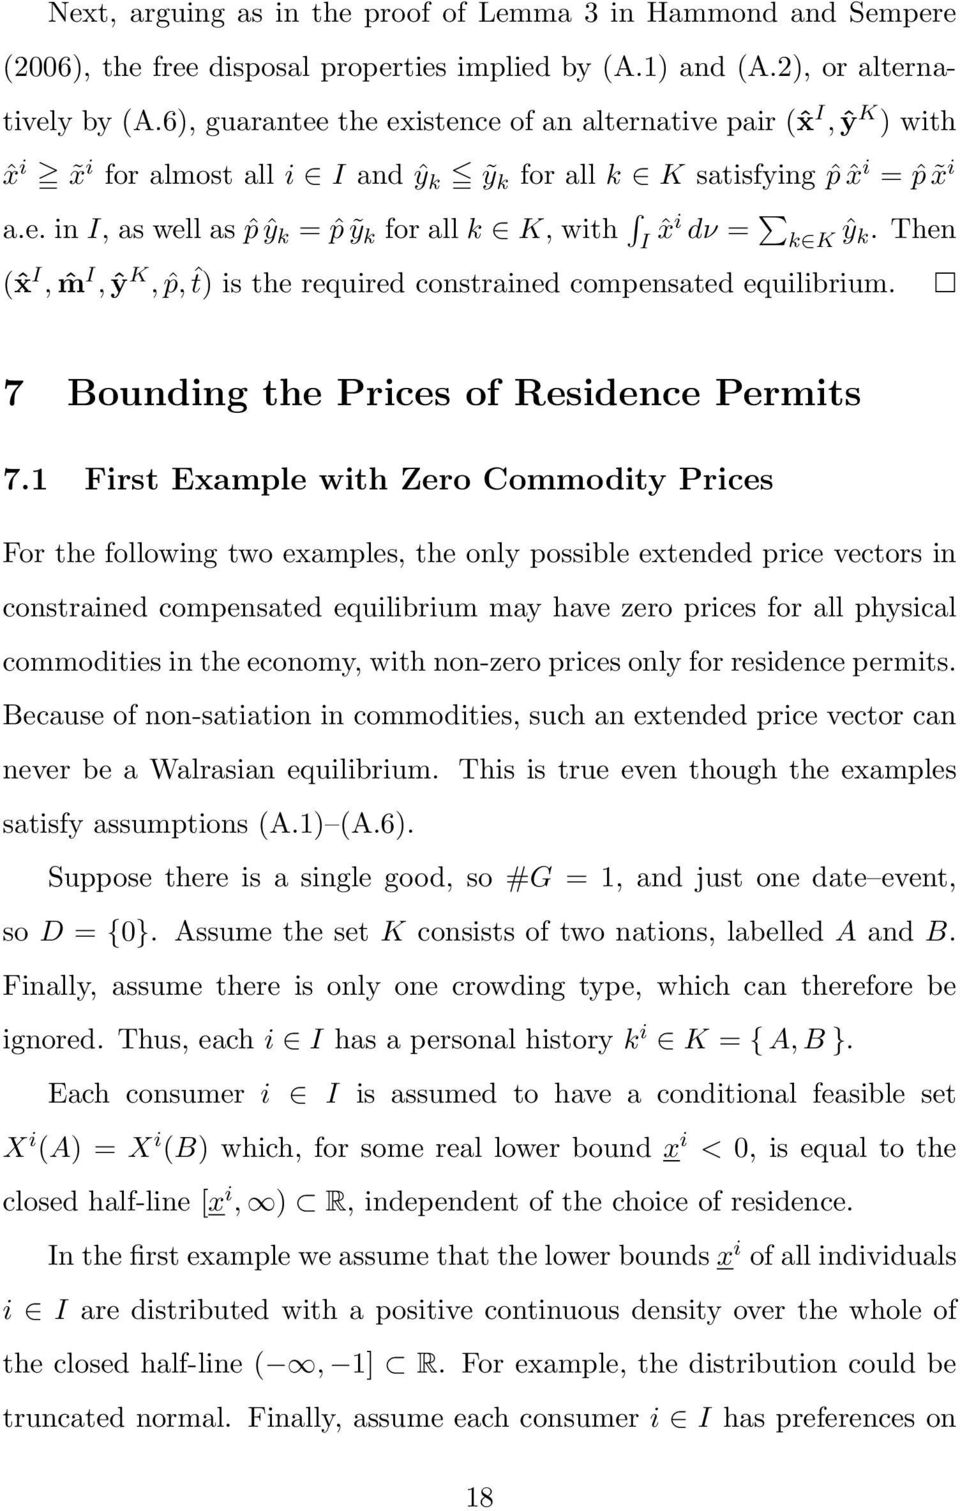 Then (ˆx I, ˆm I, ŷ K, ˆp, ˆt) is the required constrained compensated equilibrium. 7 Bounding the Prices of Residence Permits 7.